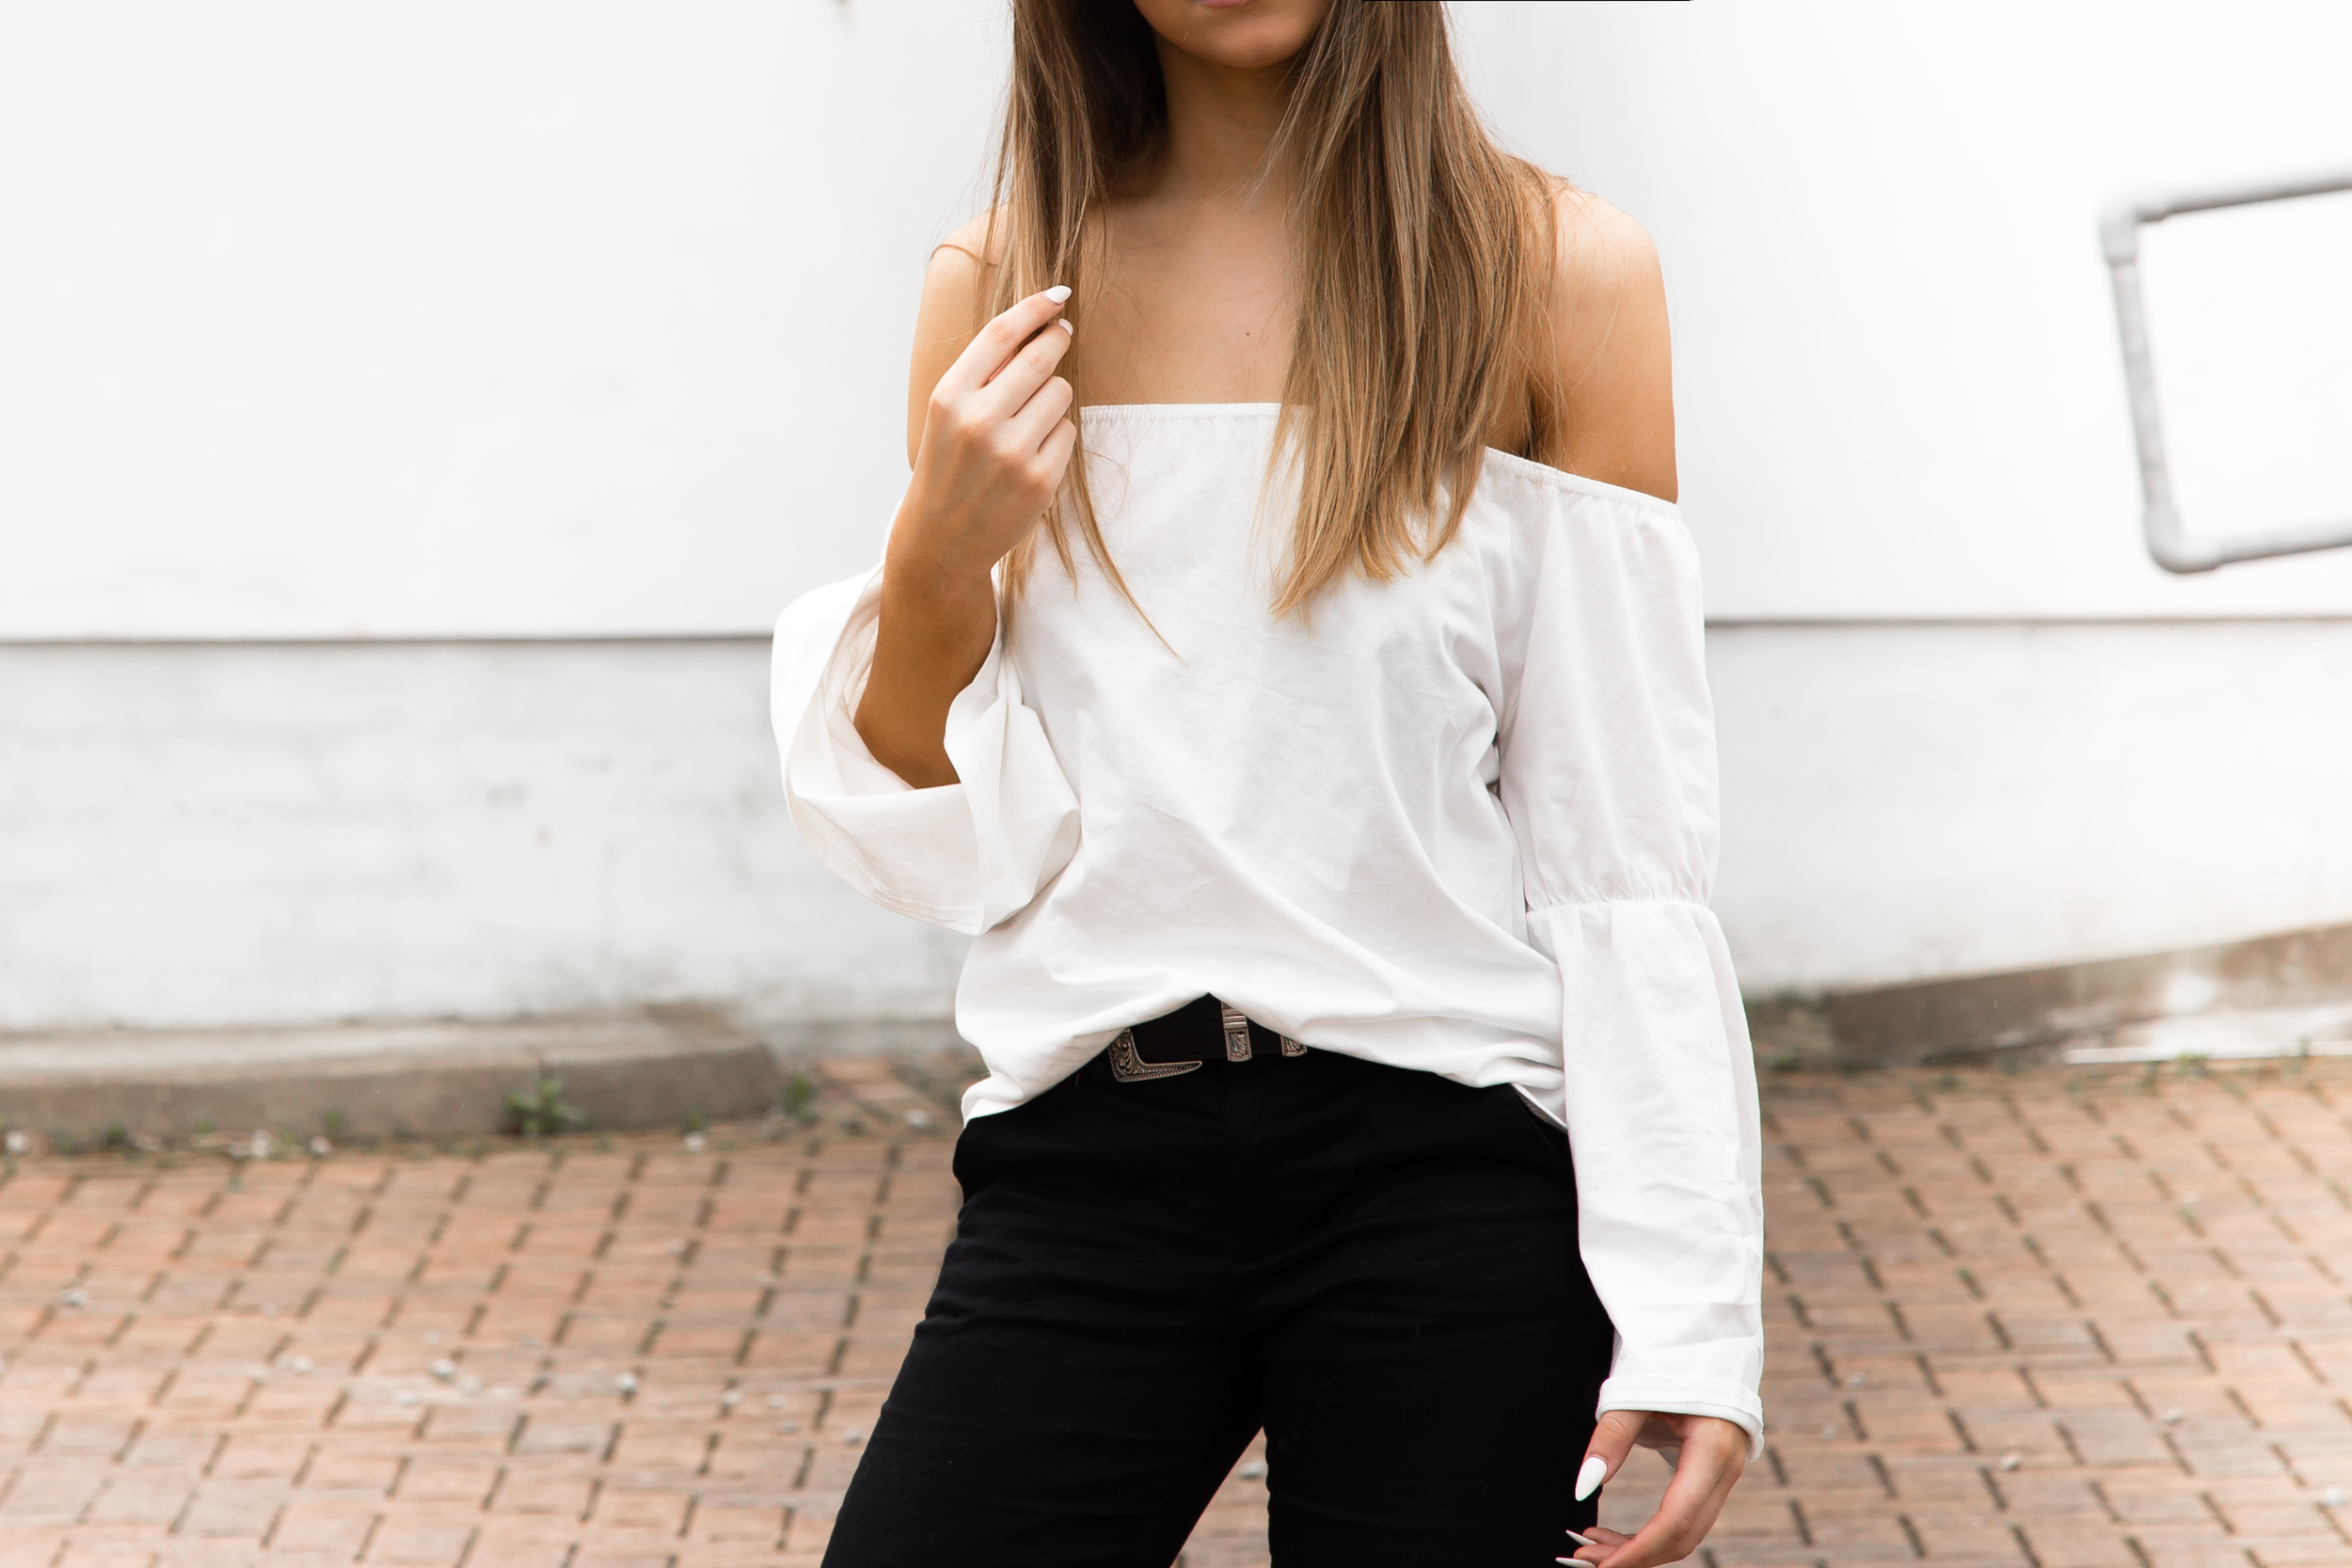 The best budget bardot tops for under £20